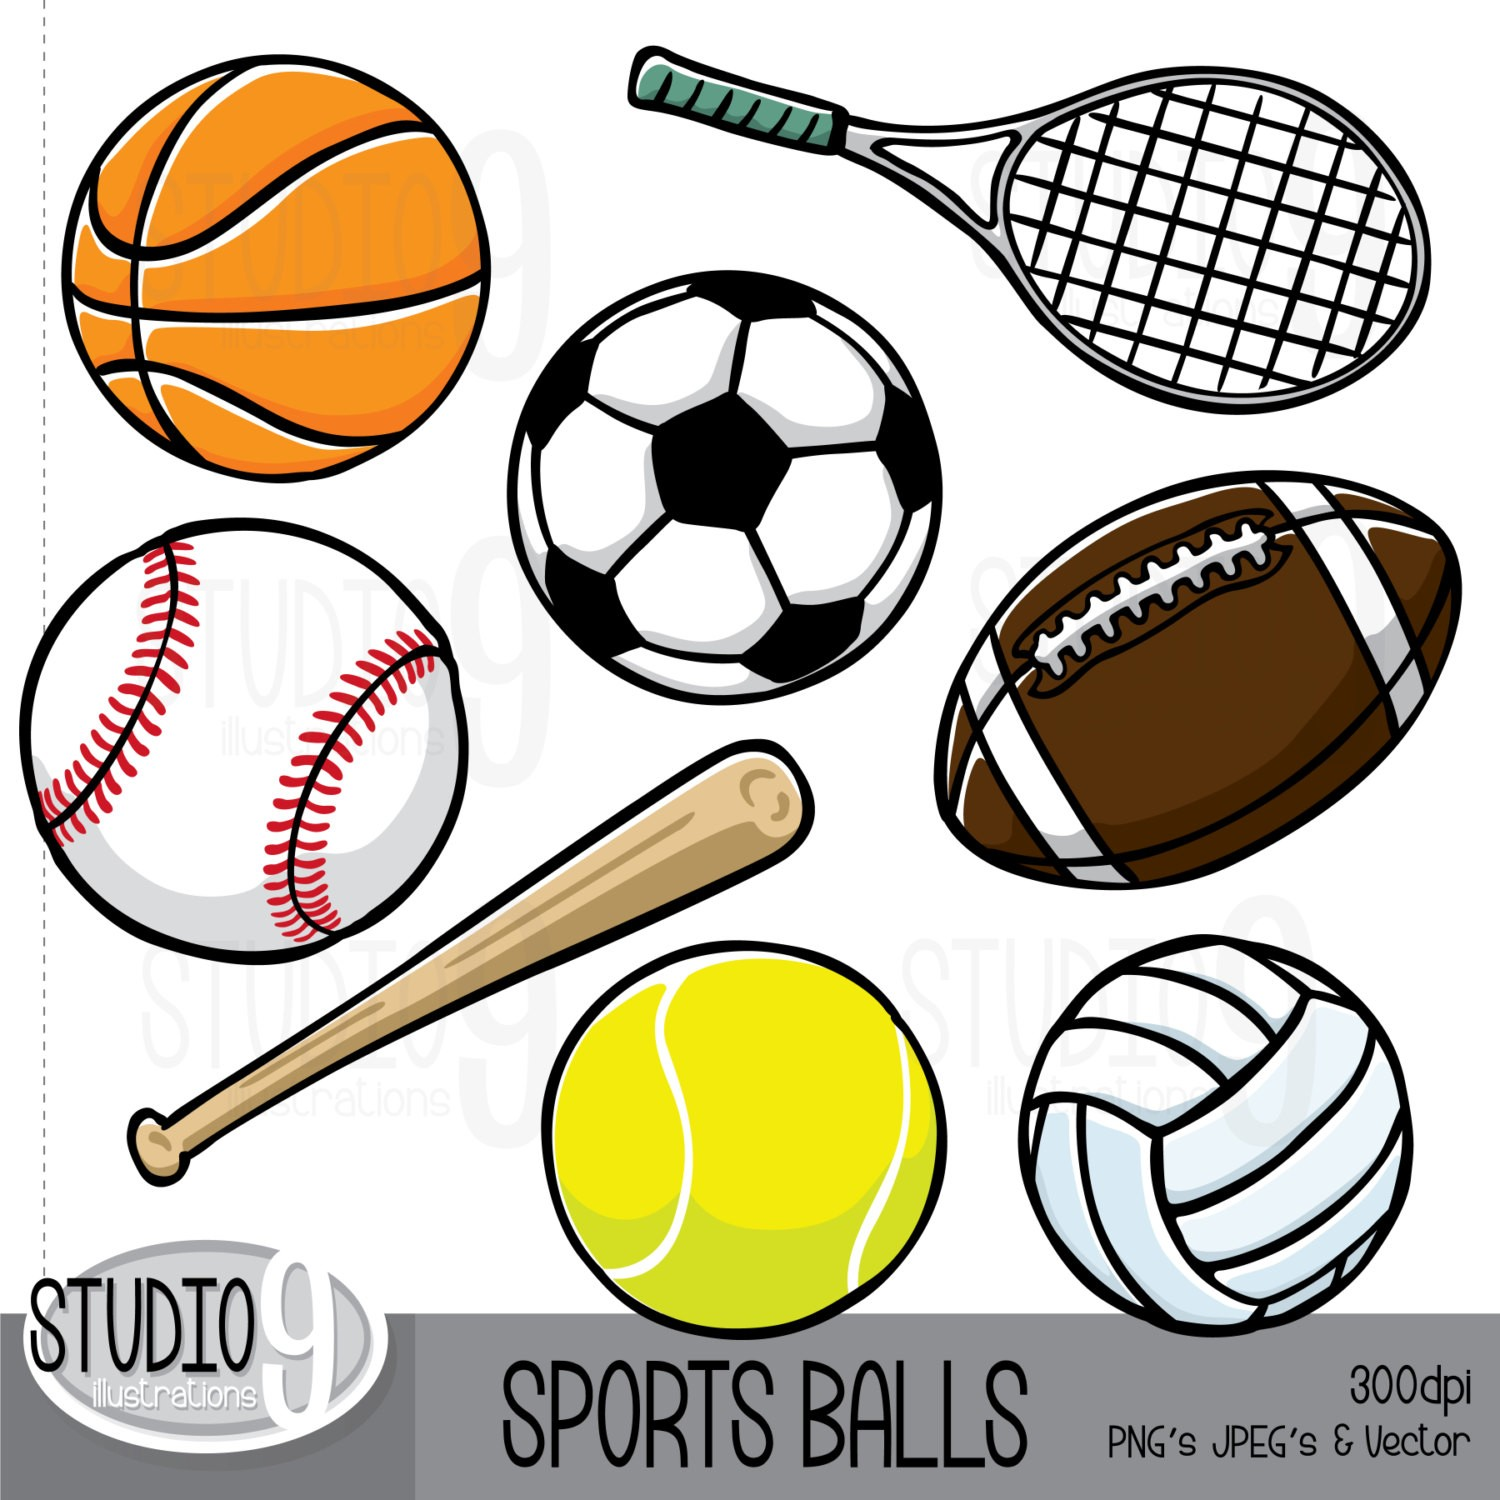 1500x1500 Image Of Football Helmet Clipart 10107 Black And Brilliant Images